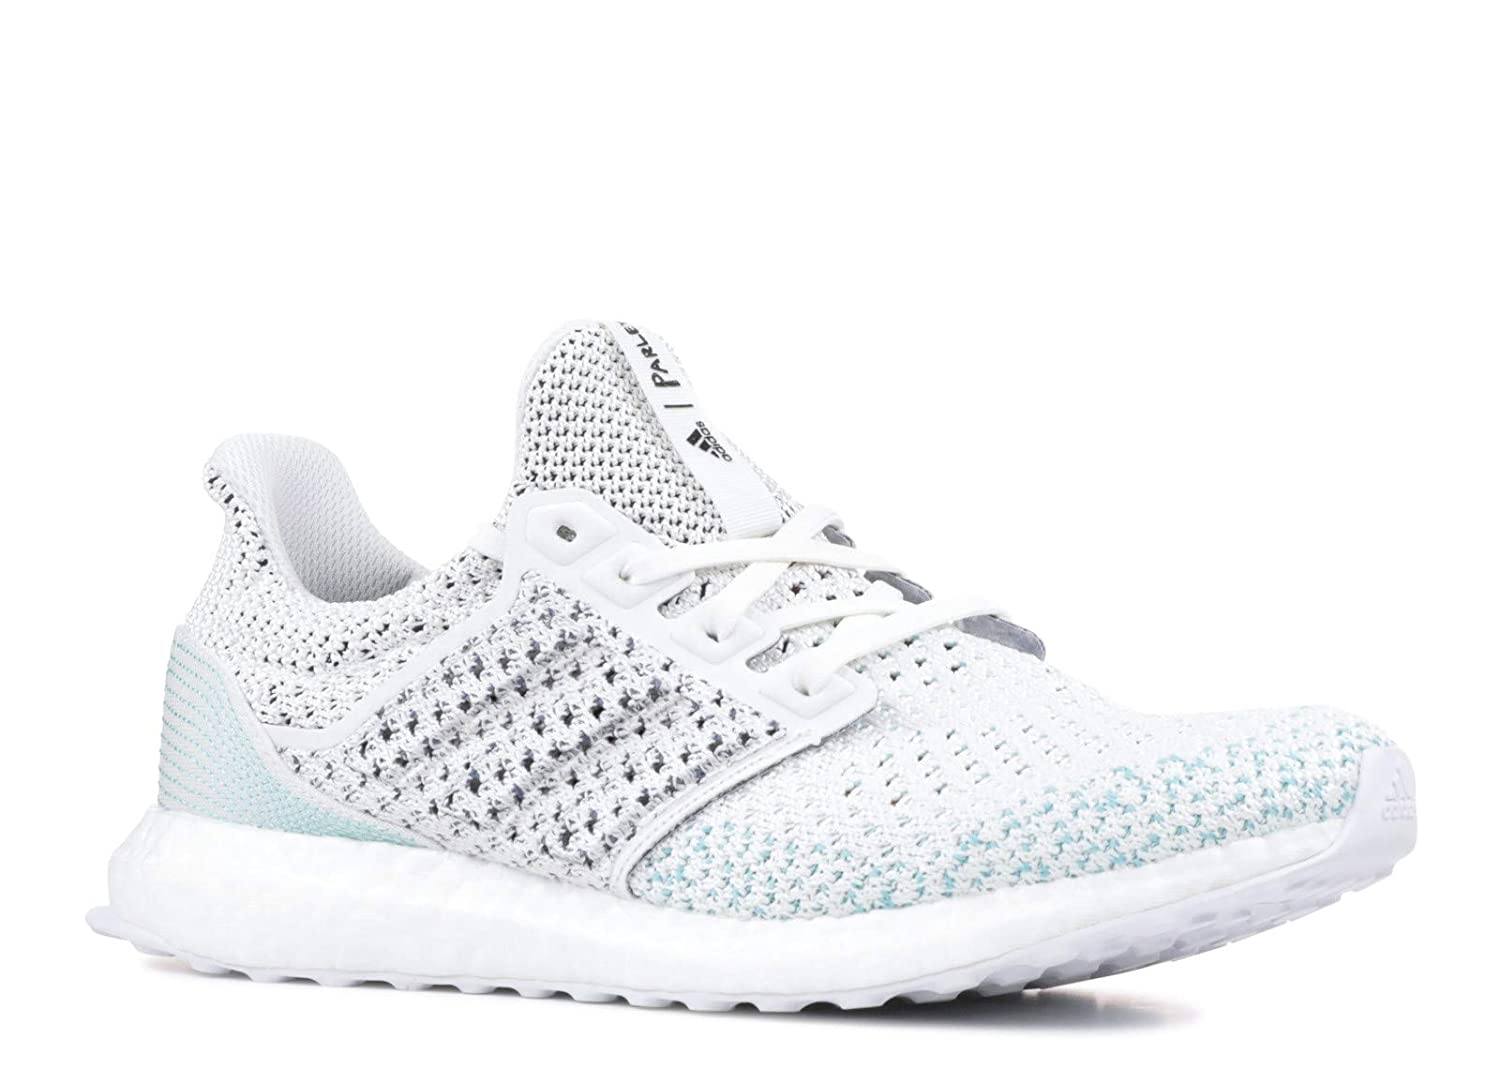 adidas ultra boost clima parley white blue